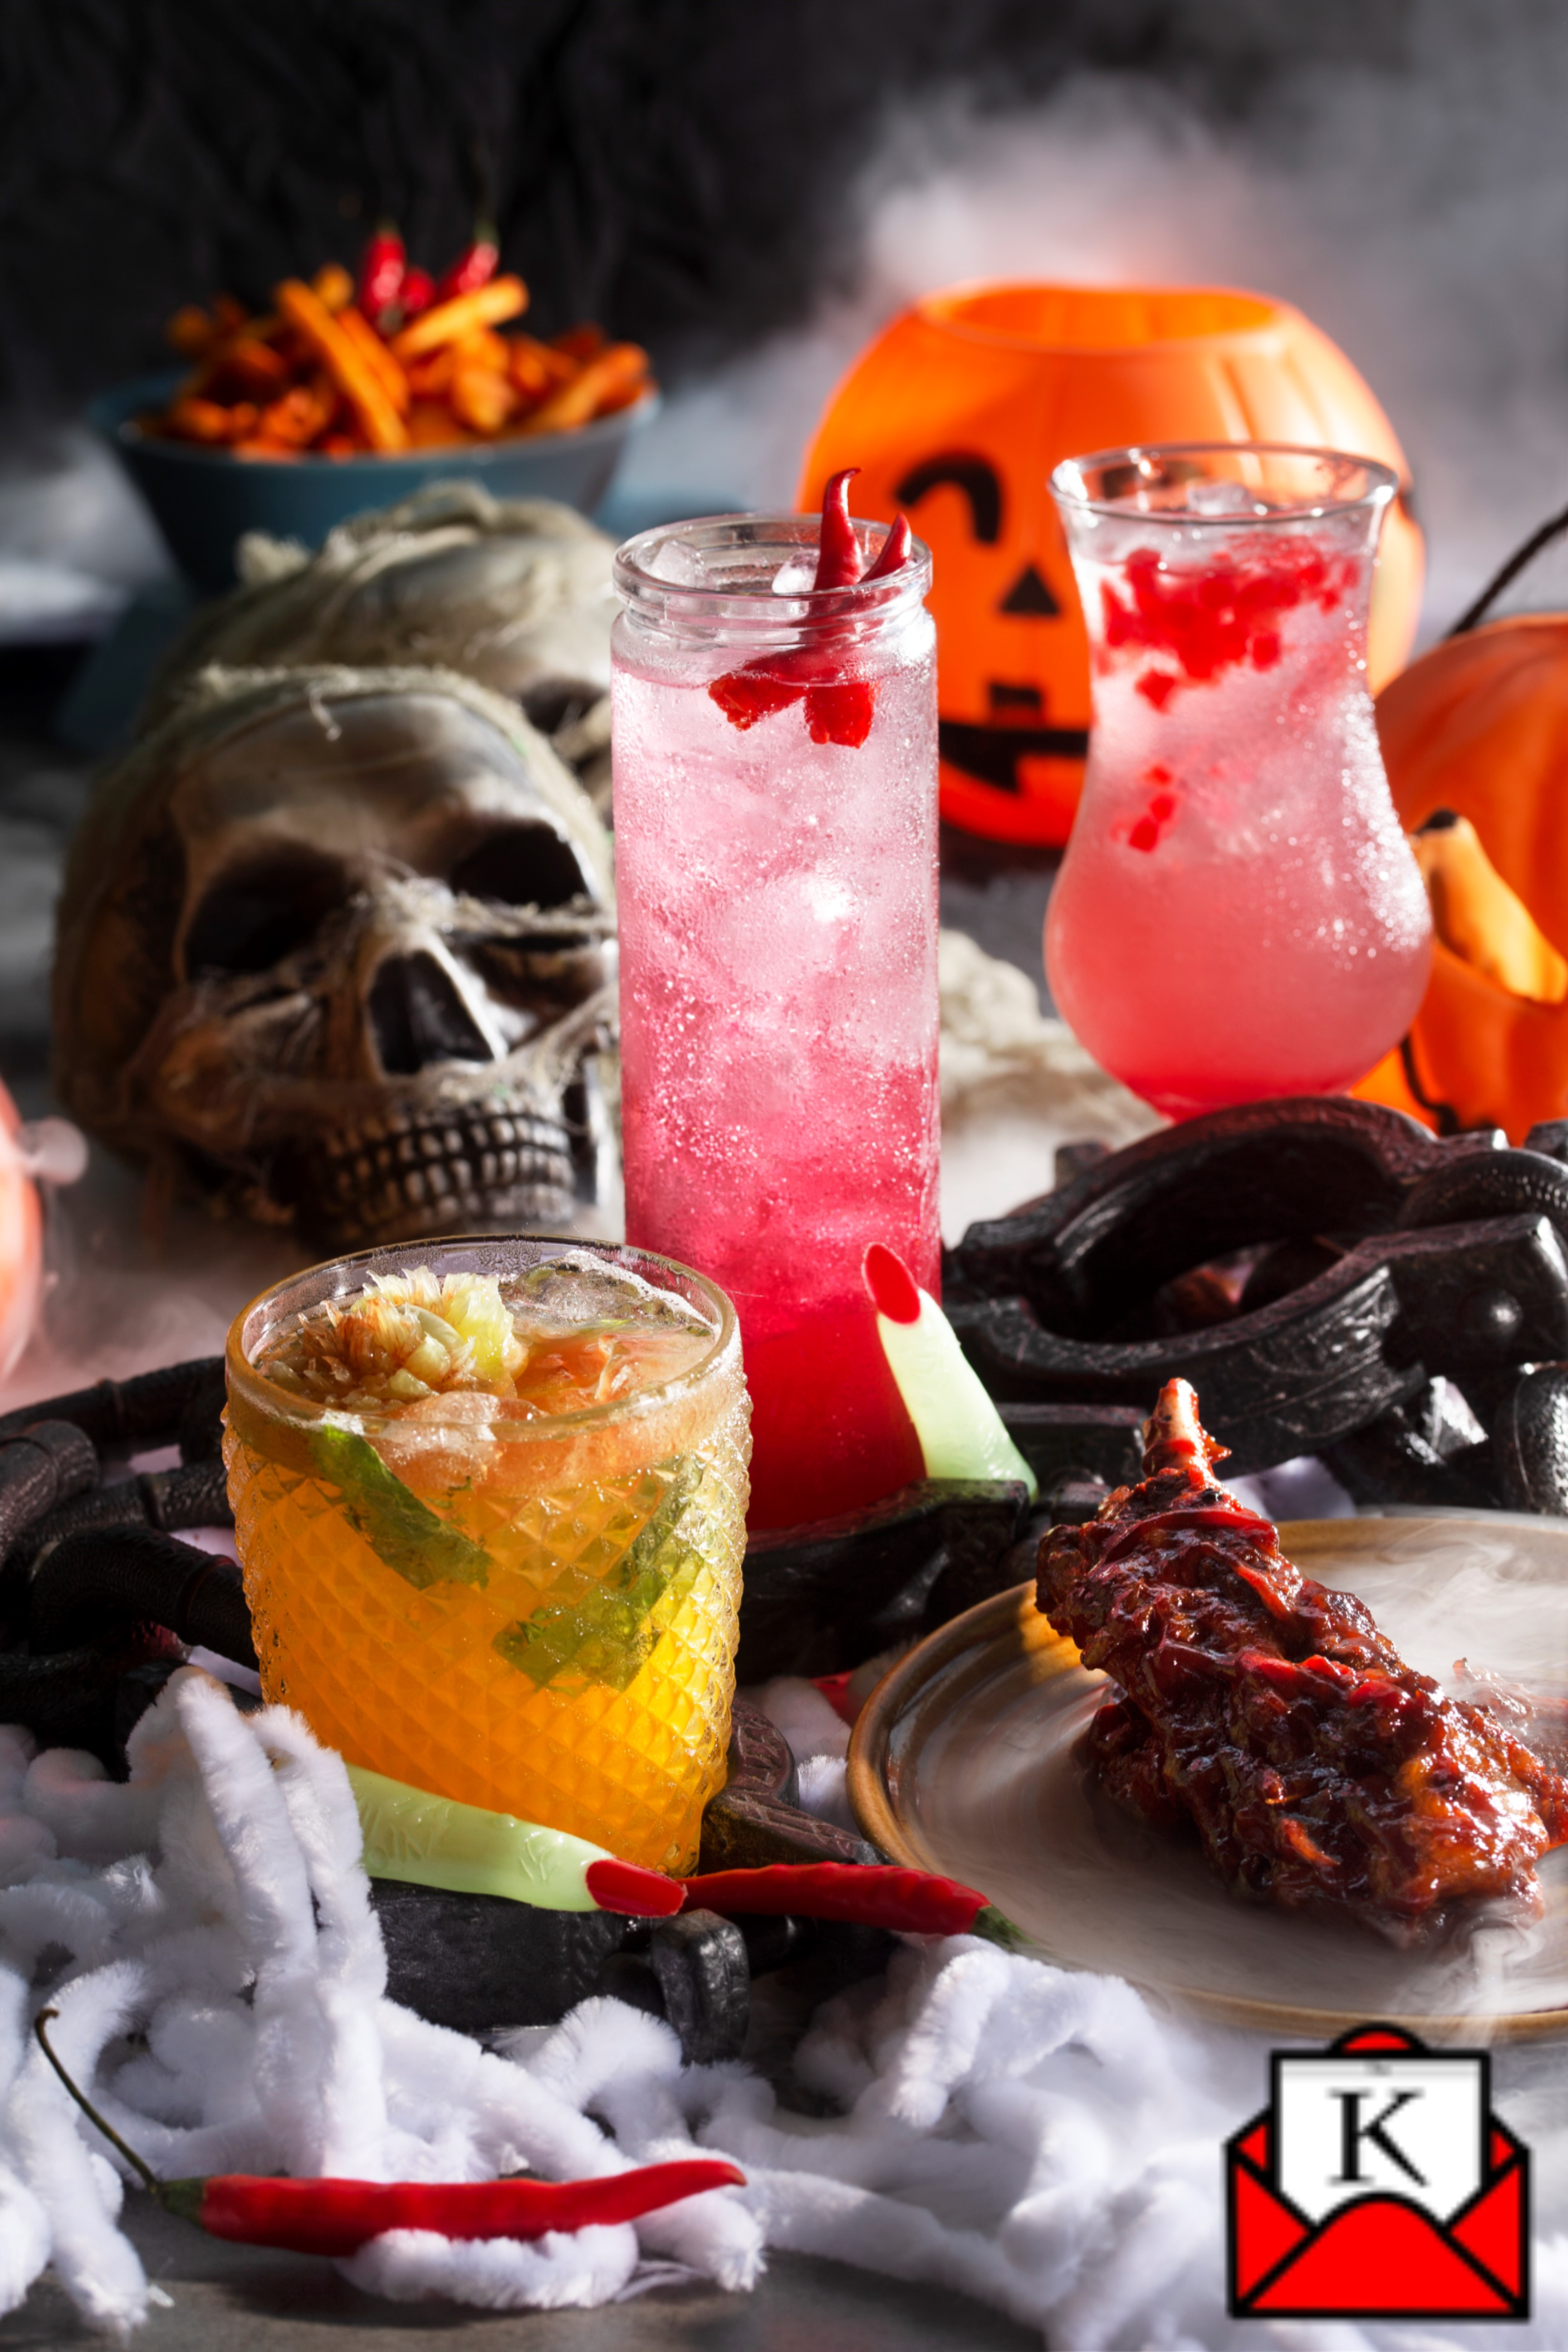 Celebrate Halloween at Monkey Bar's Haunted House on 31st October